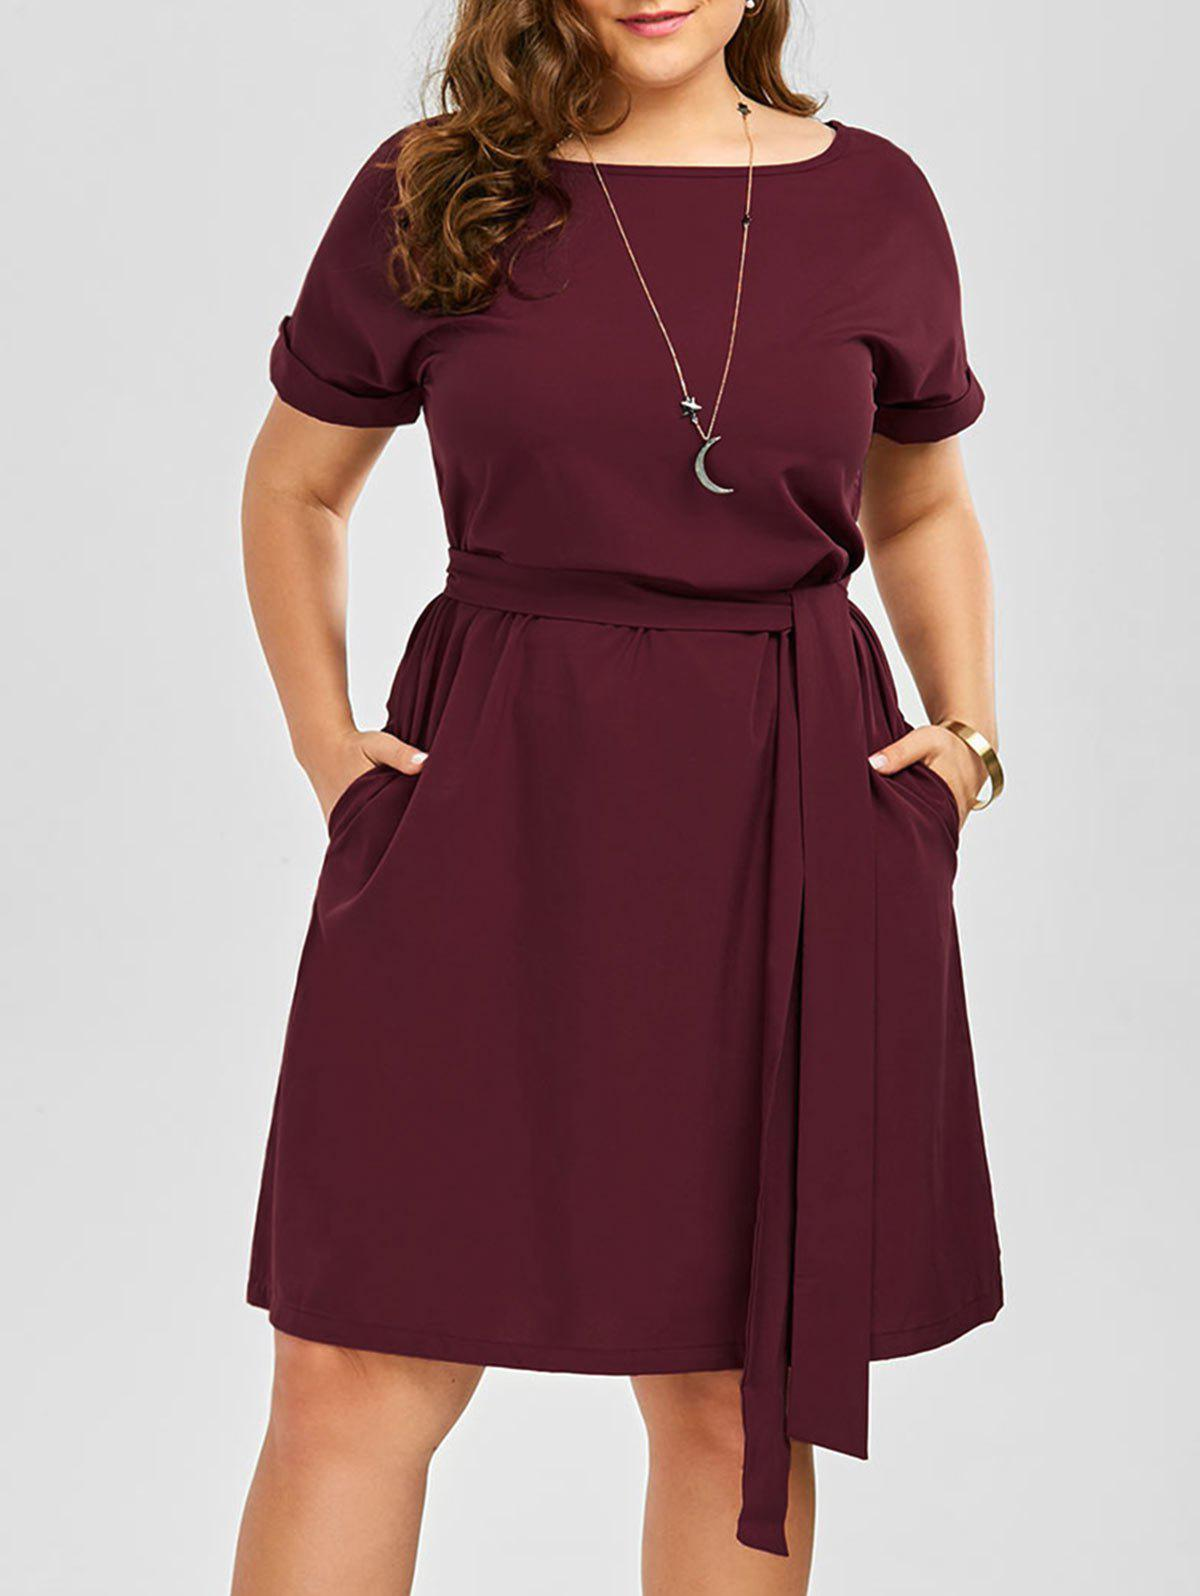 Plus Size Belted Knee Length A Line Dress With PocketWOMEN<br><br>Size: 5XL; Color: WINE RED; Style: Work; Material: Cotton Blend,Polyester; Silhouette: A-Line; Dresses Length: Knee-Length; Neckline: Round Collar; Sleeve Length: Short Sleeves; Embellishment: Pockets; Pattern Type: Solid Color; With Belt: Yes; Season: Spring,Summer; Weight: 0.3500kg; Package Contents: 1 x Dress 1 x Belt;